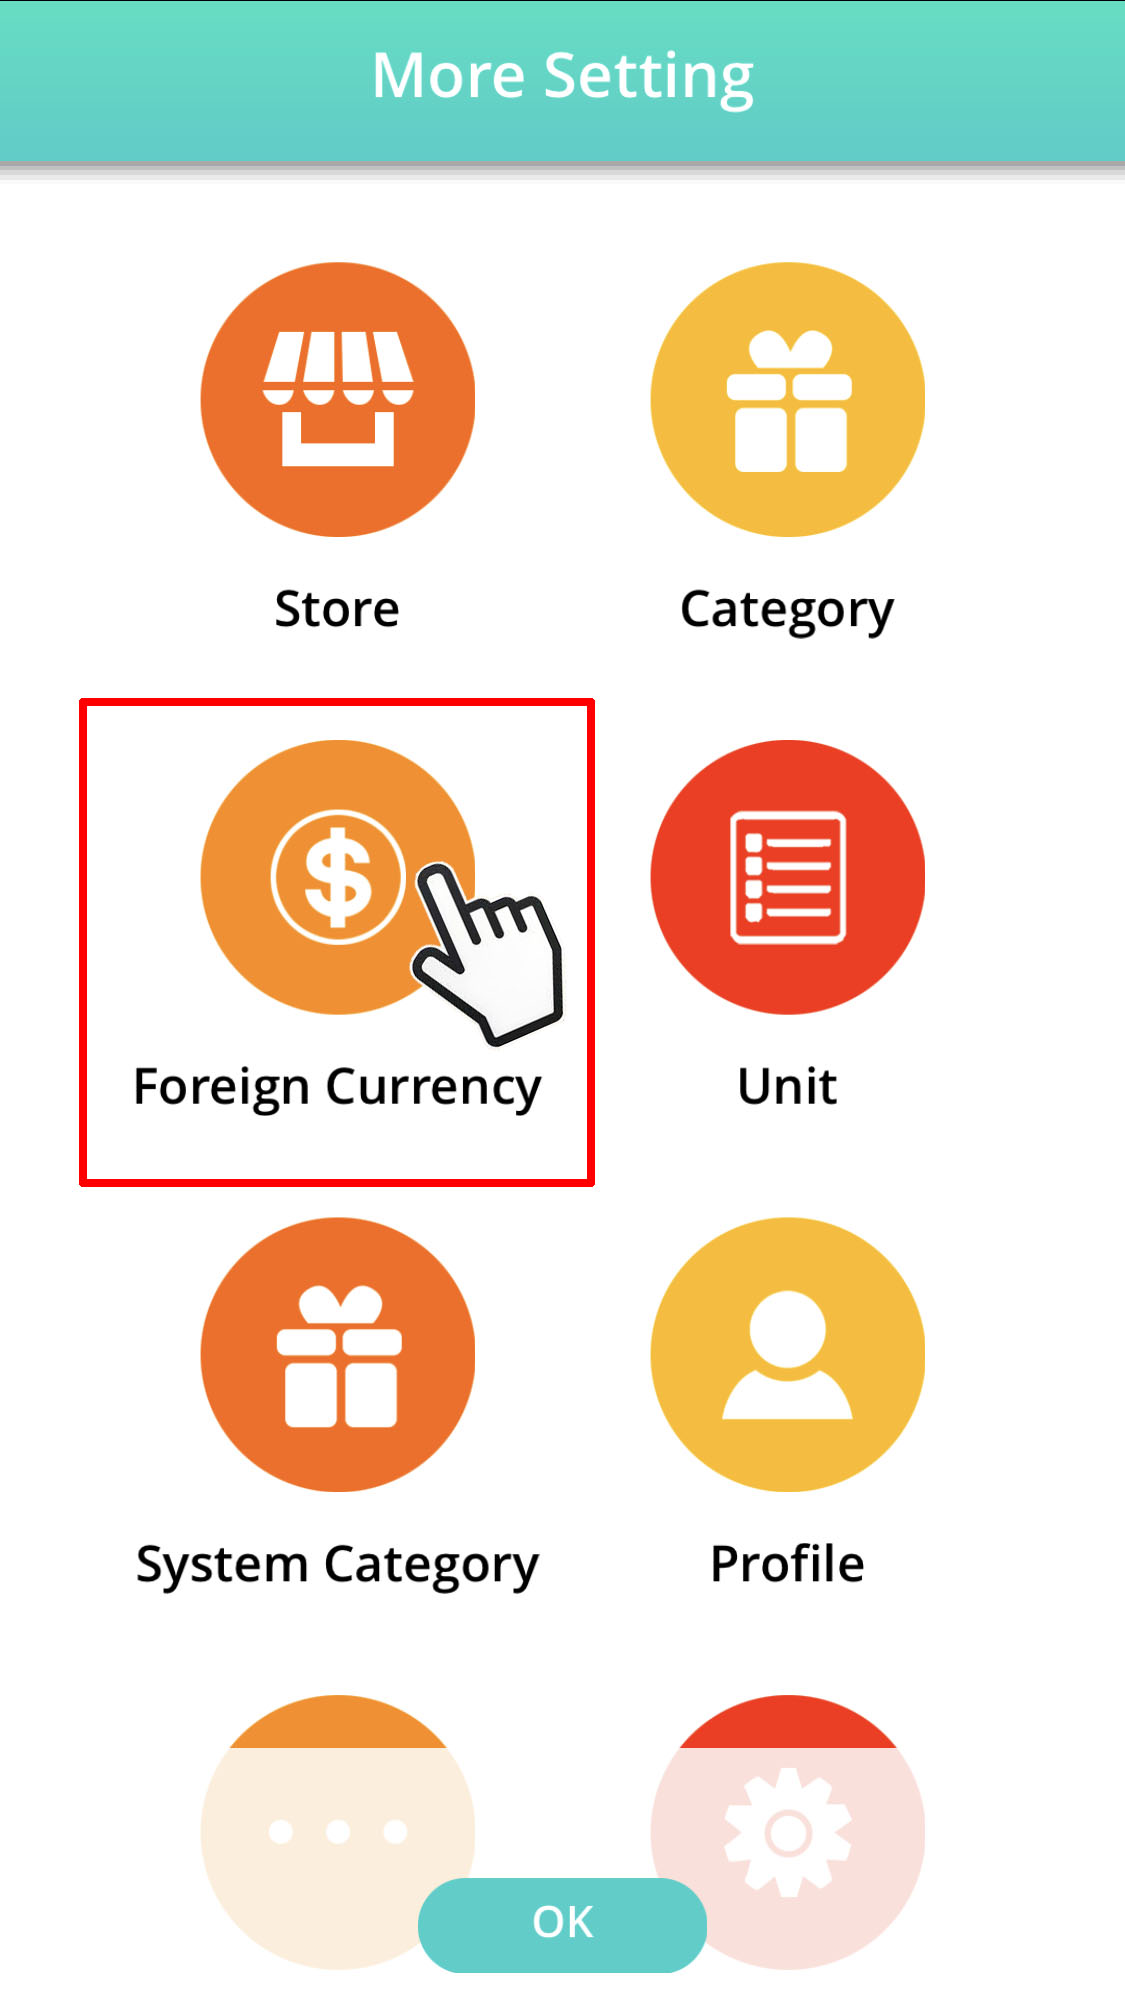 more setting click foreign currency